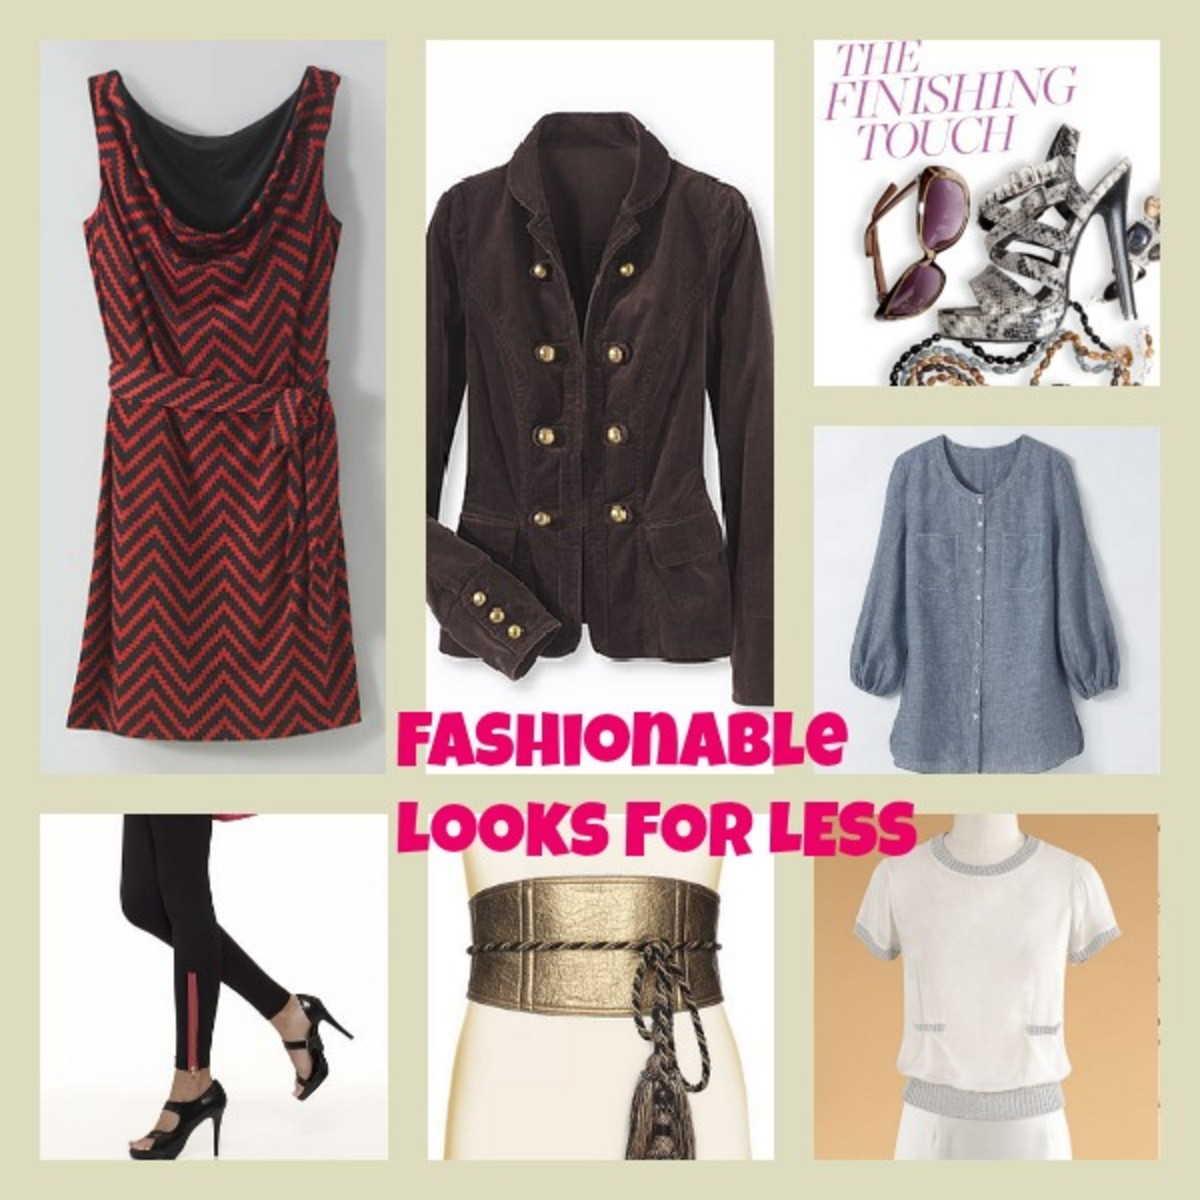 Momtrends reviews the latest looks for less on UltimateOutlet.com